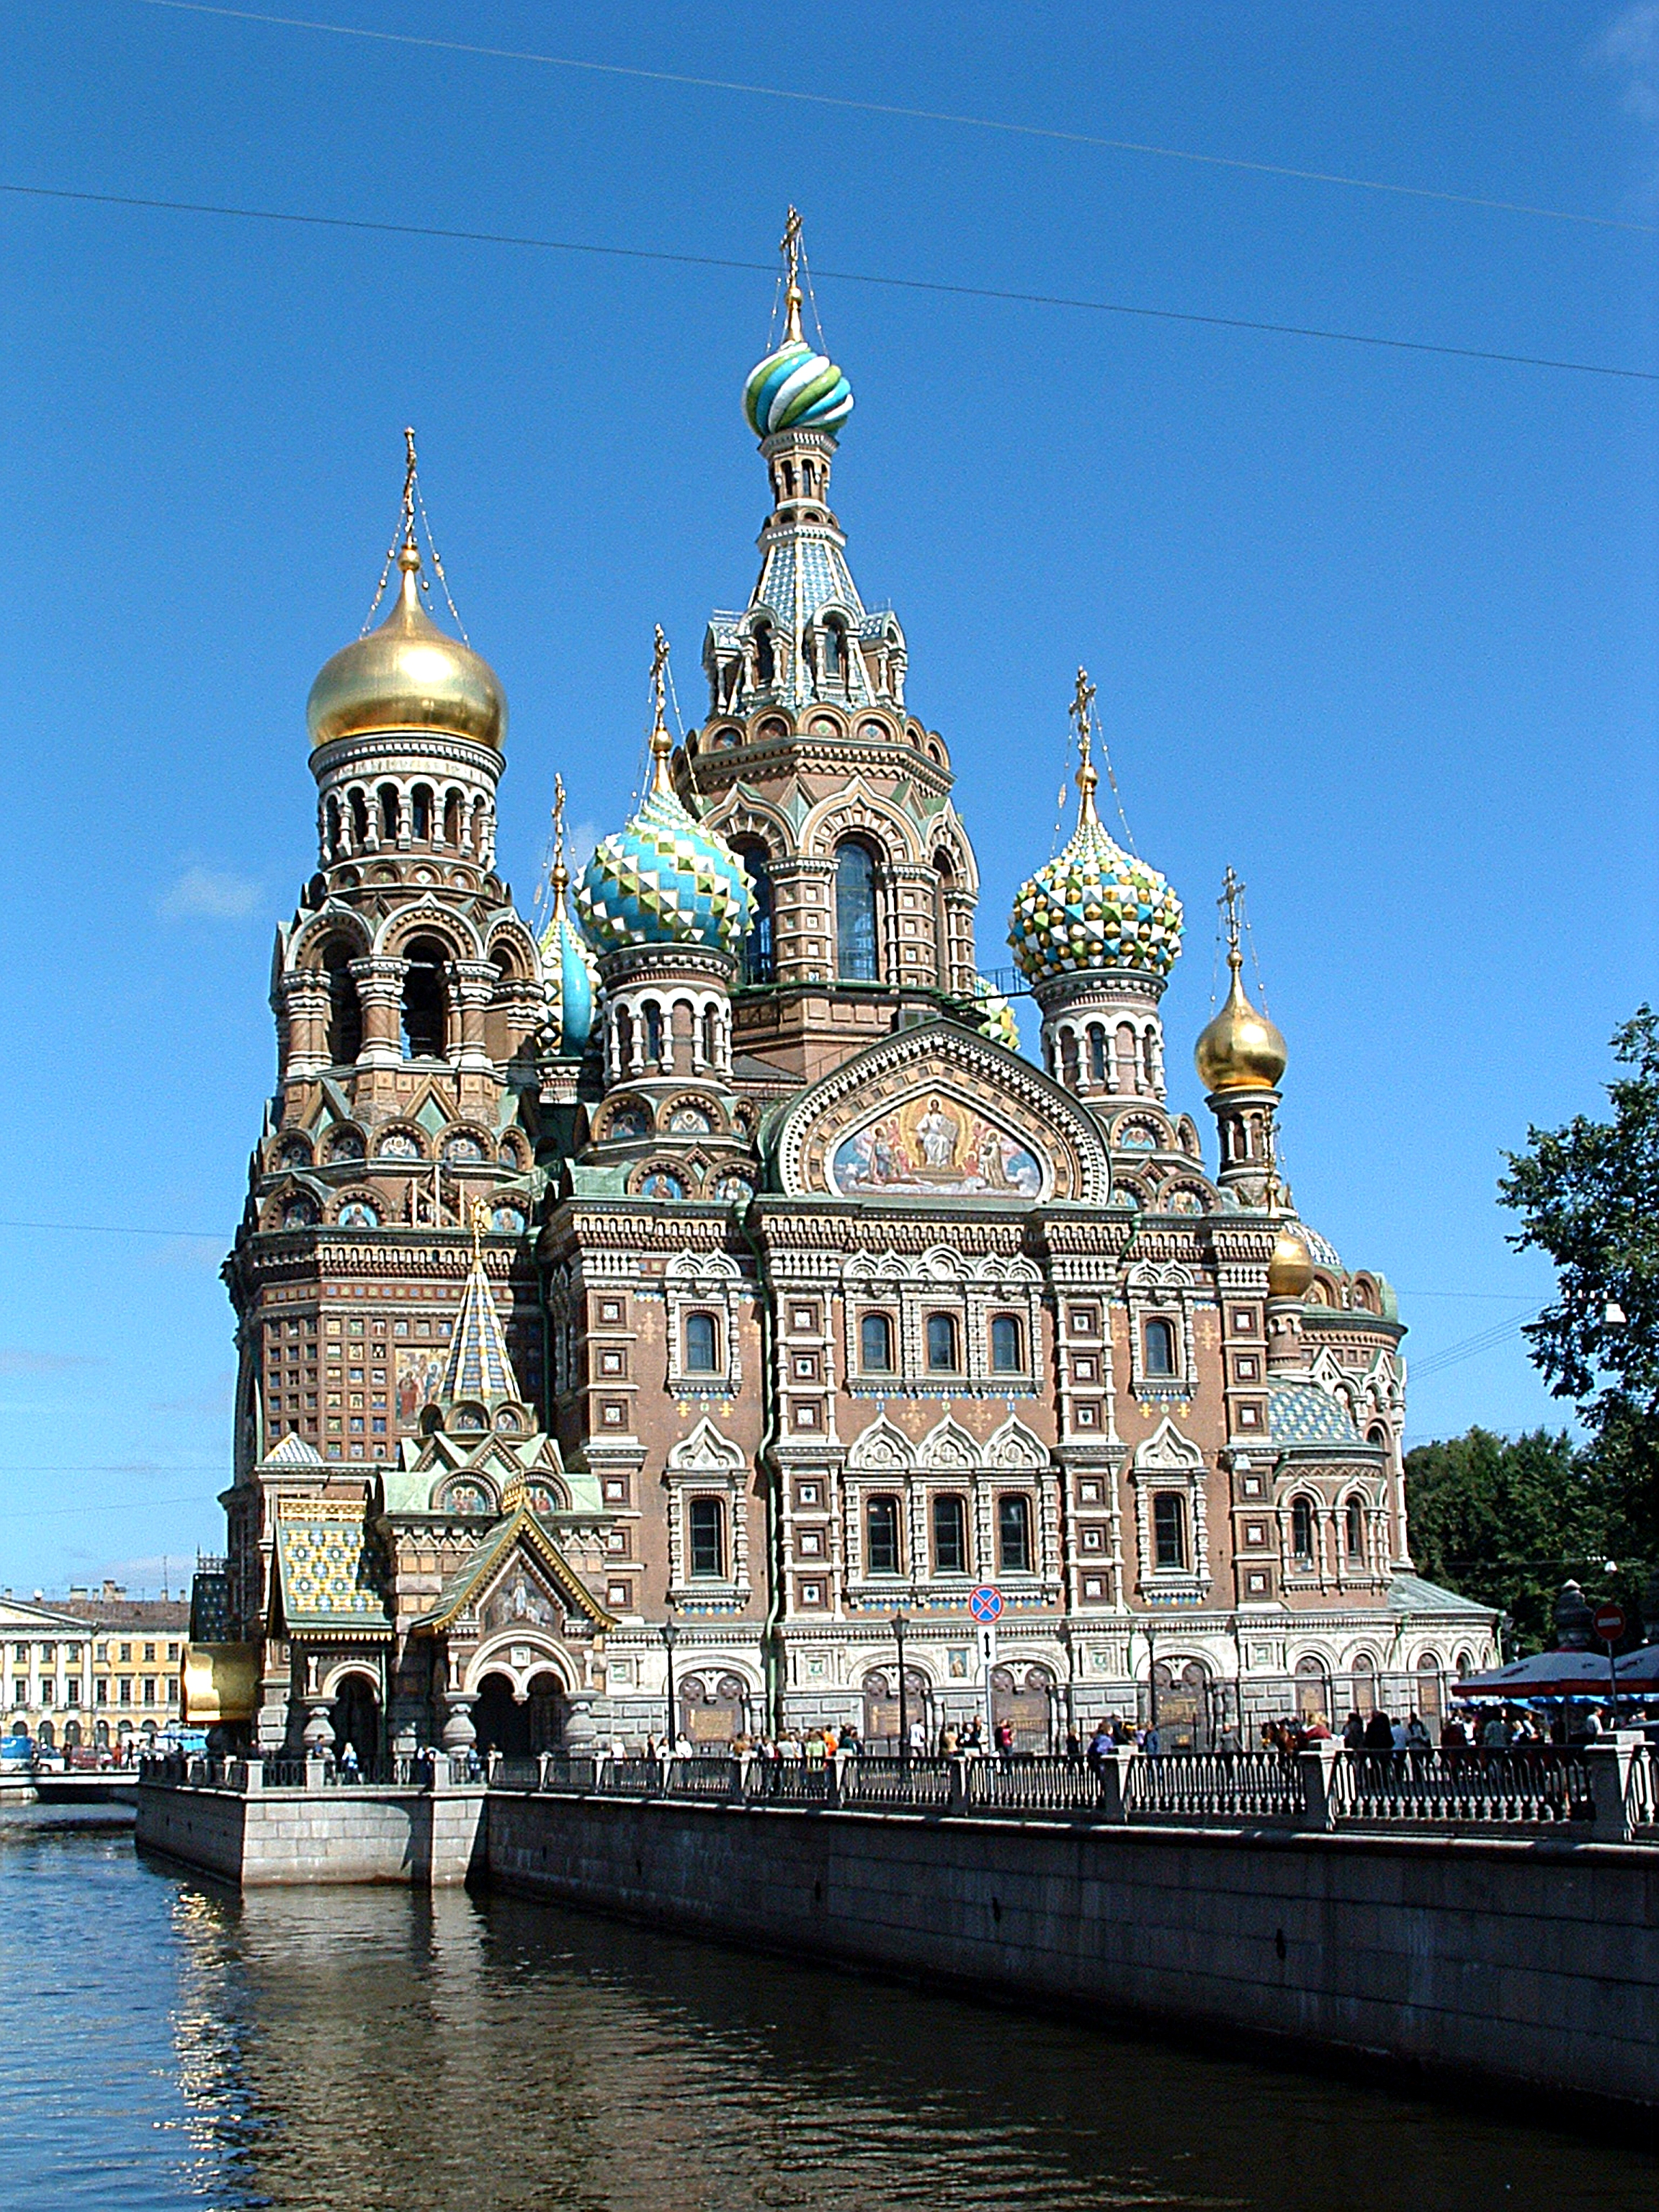 St Petersburg Architecture Church of the Savior on Blood 2005 01